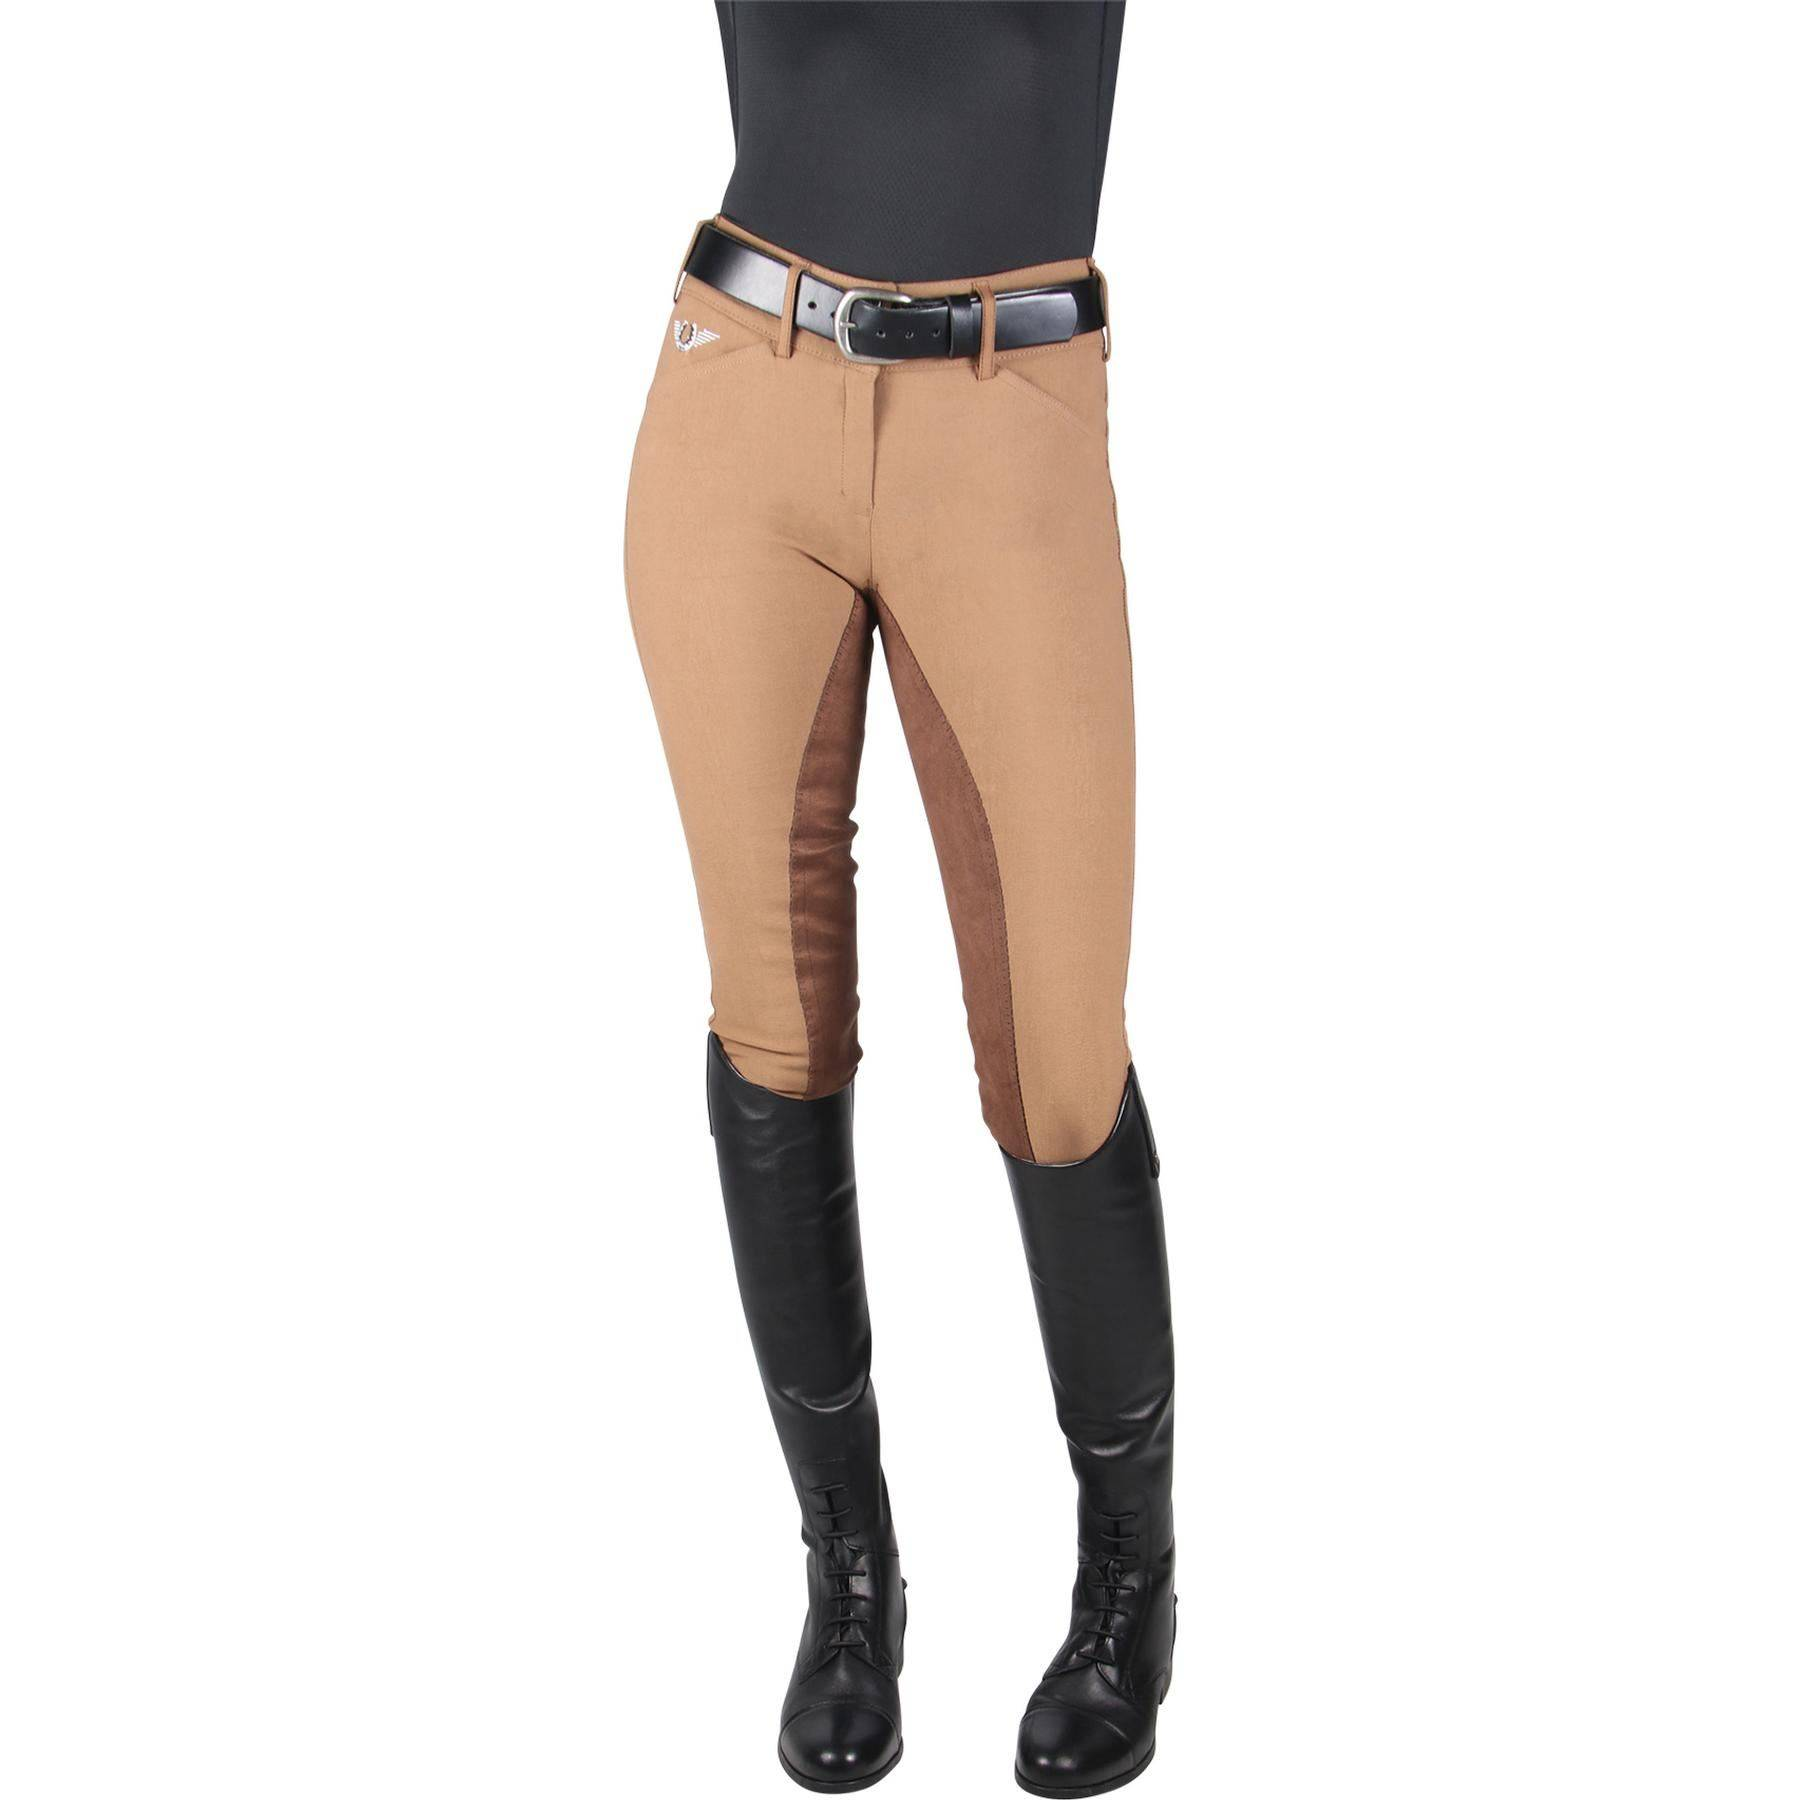 TuffRider® Piaffe Full Seat Breeches